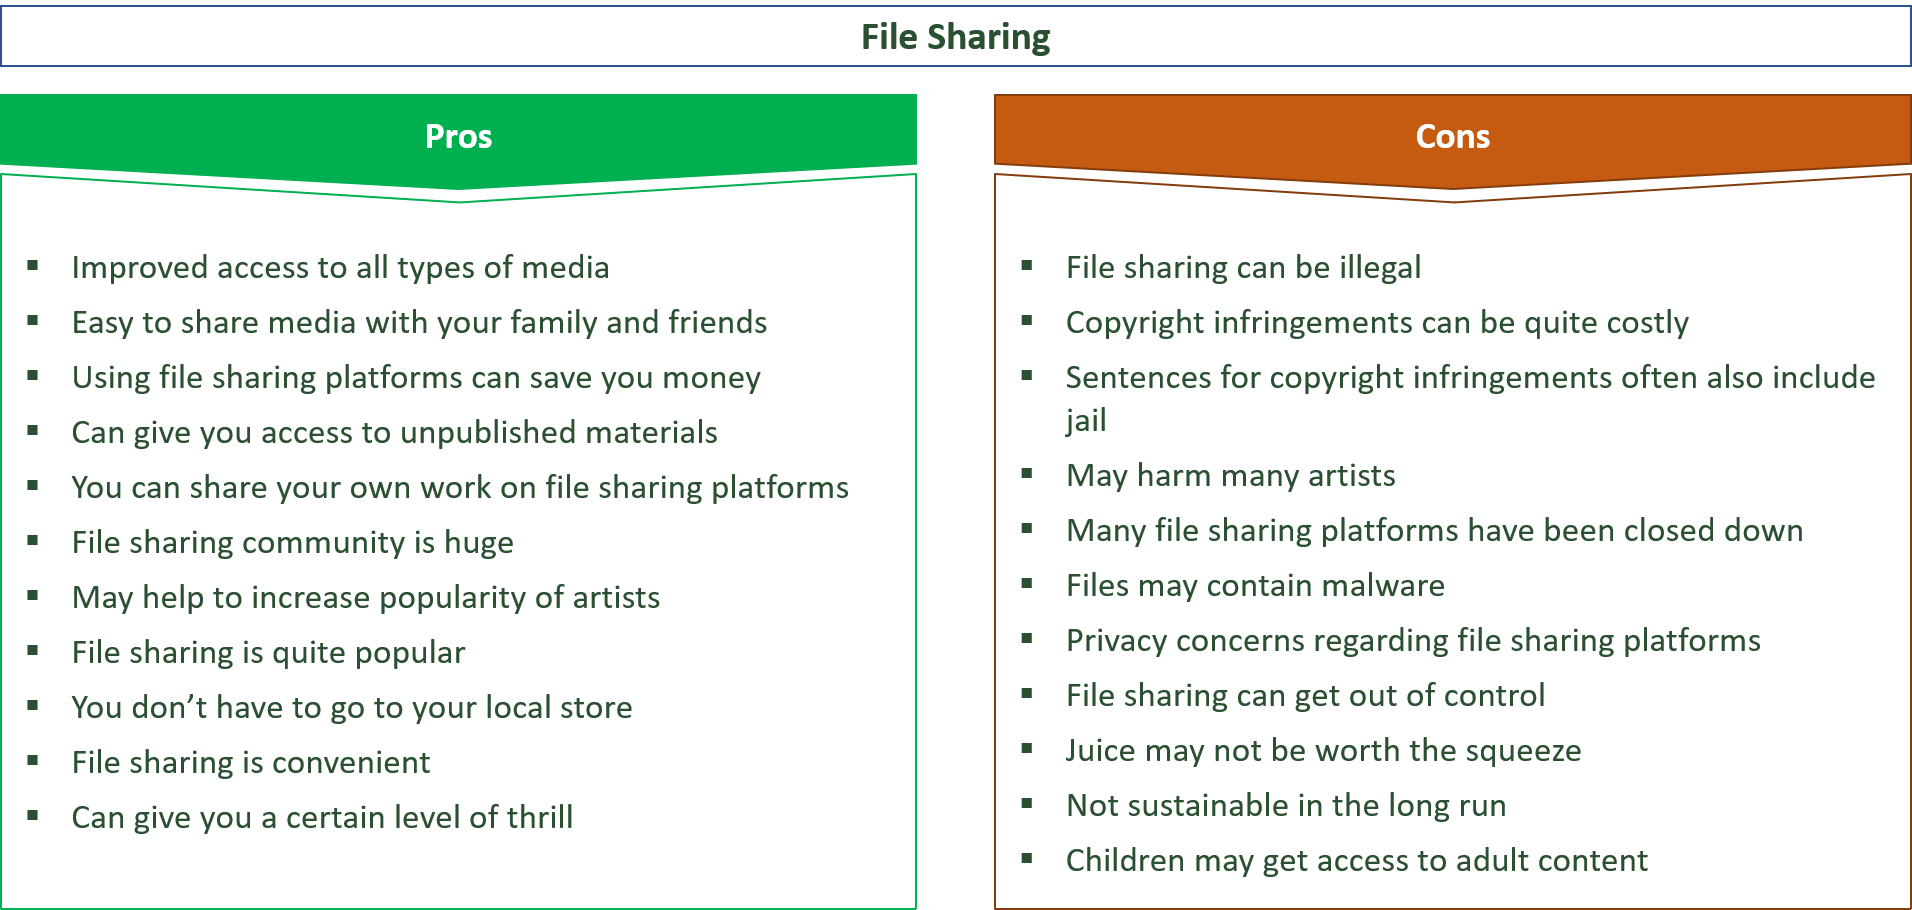 advantages and disadvantages of file sharing